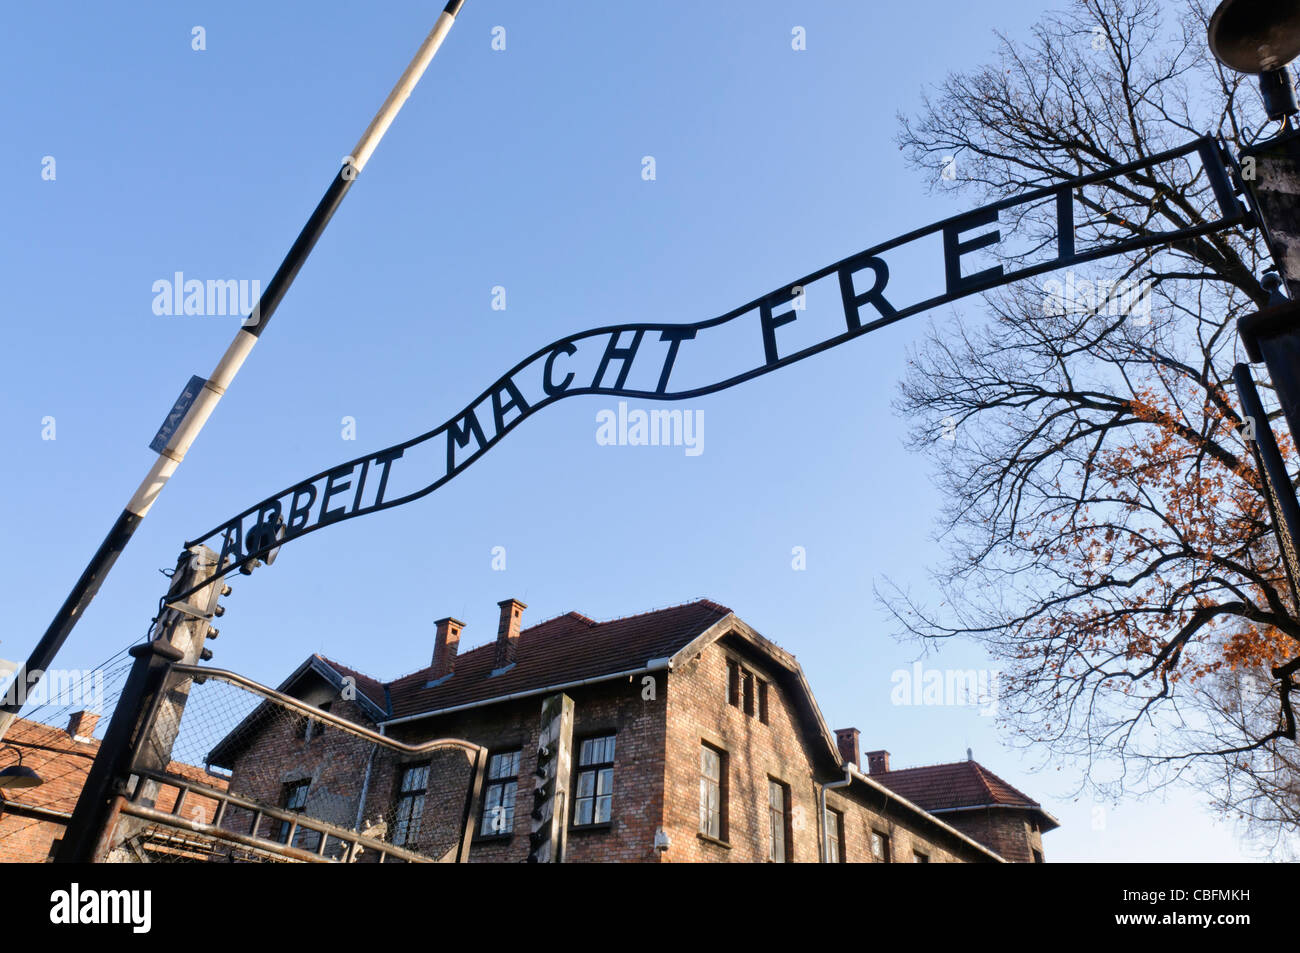 Main entrance to Auschwitz I Nazi concentration camp with sign 'Arbeit Macht Frei' - Stock Image